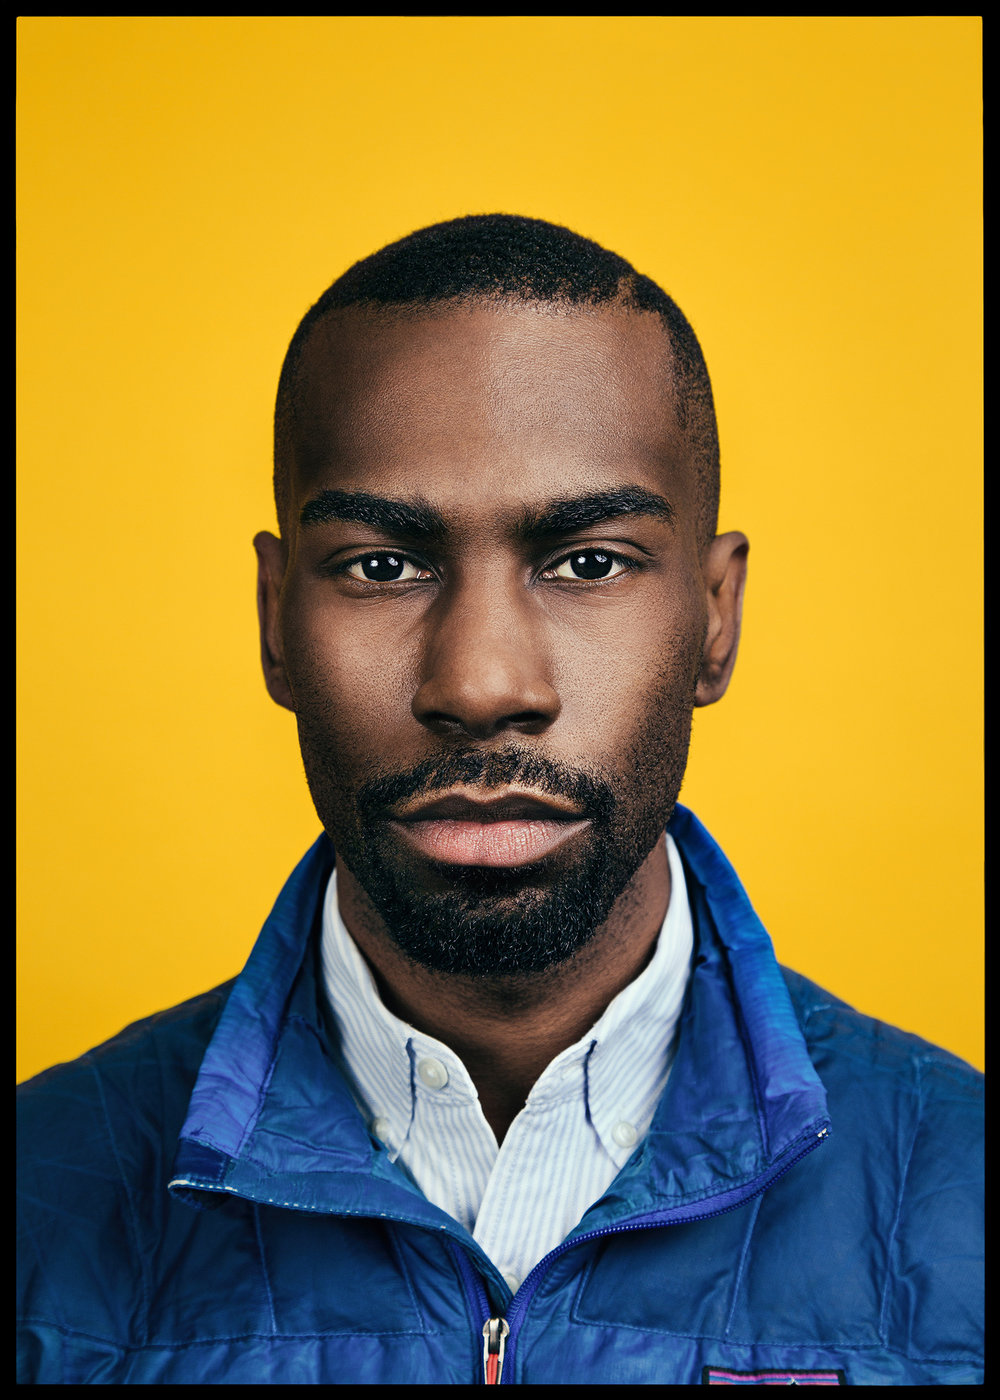 quinn russell brown, quinn brown seattle, quinn russell brown seattle, quinn russell brown seattle photography, seattle editorial portrait, seattle studio portrait photography, deray mckesson, deray mckesson portrait, deray mckesson black lives matter, deray mckesson photo